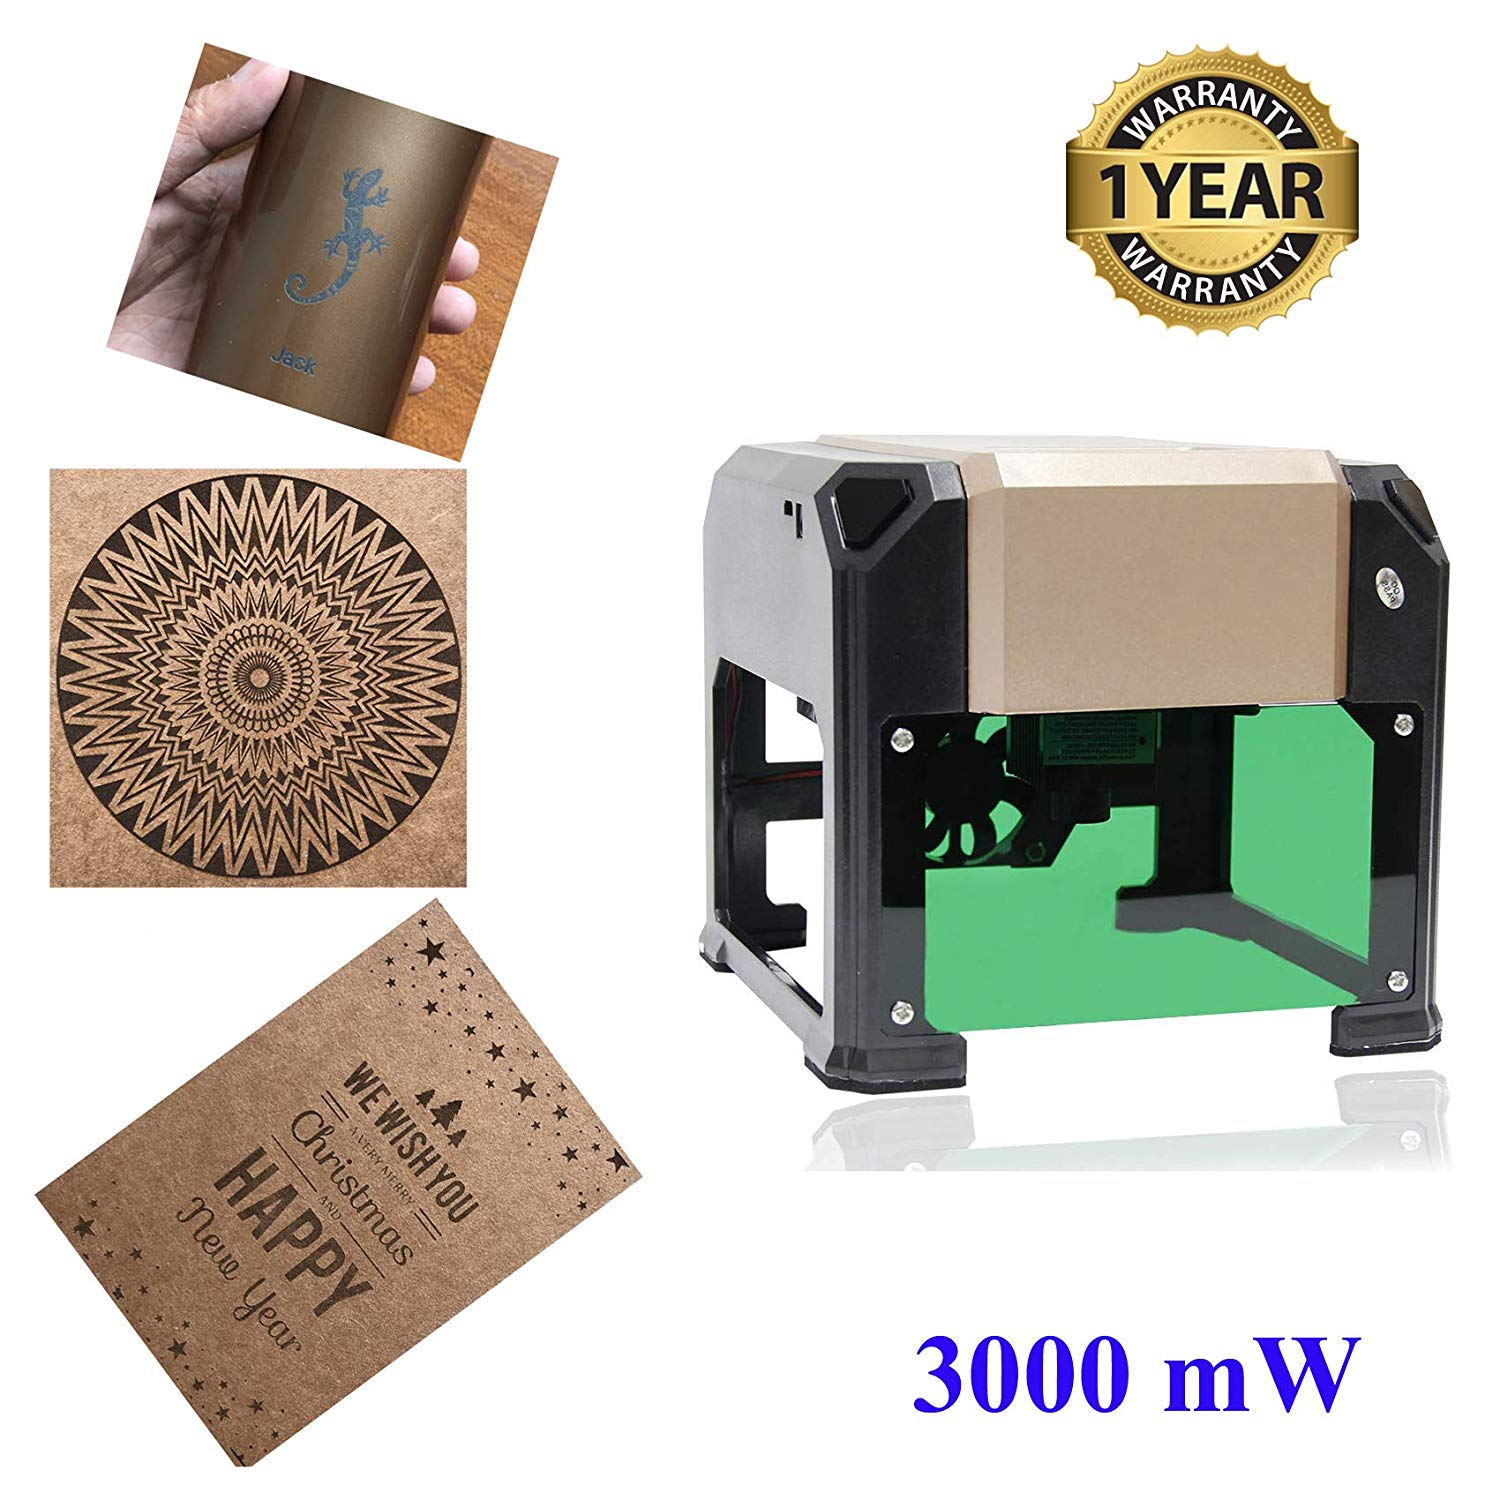 Laser Engraver Machine, Laser Engraving Machine 3000mW